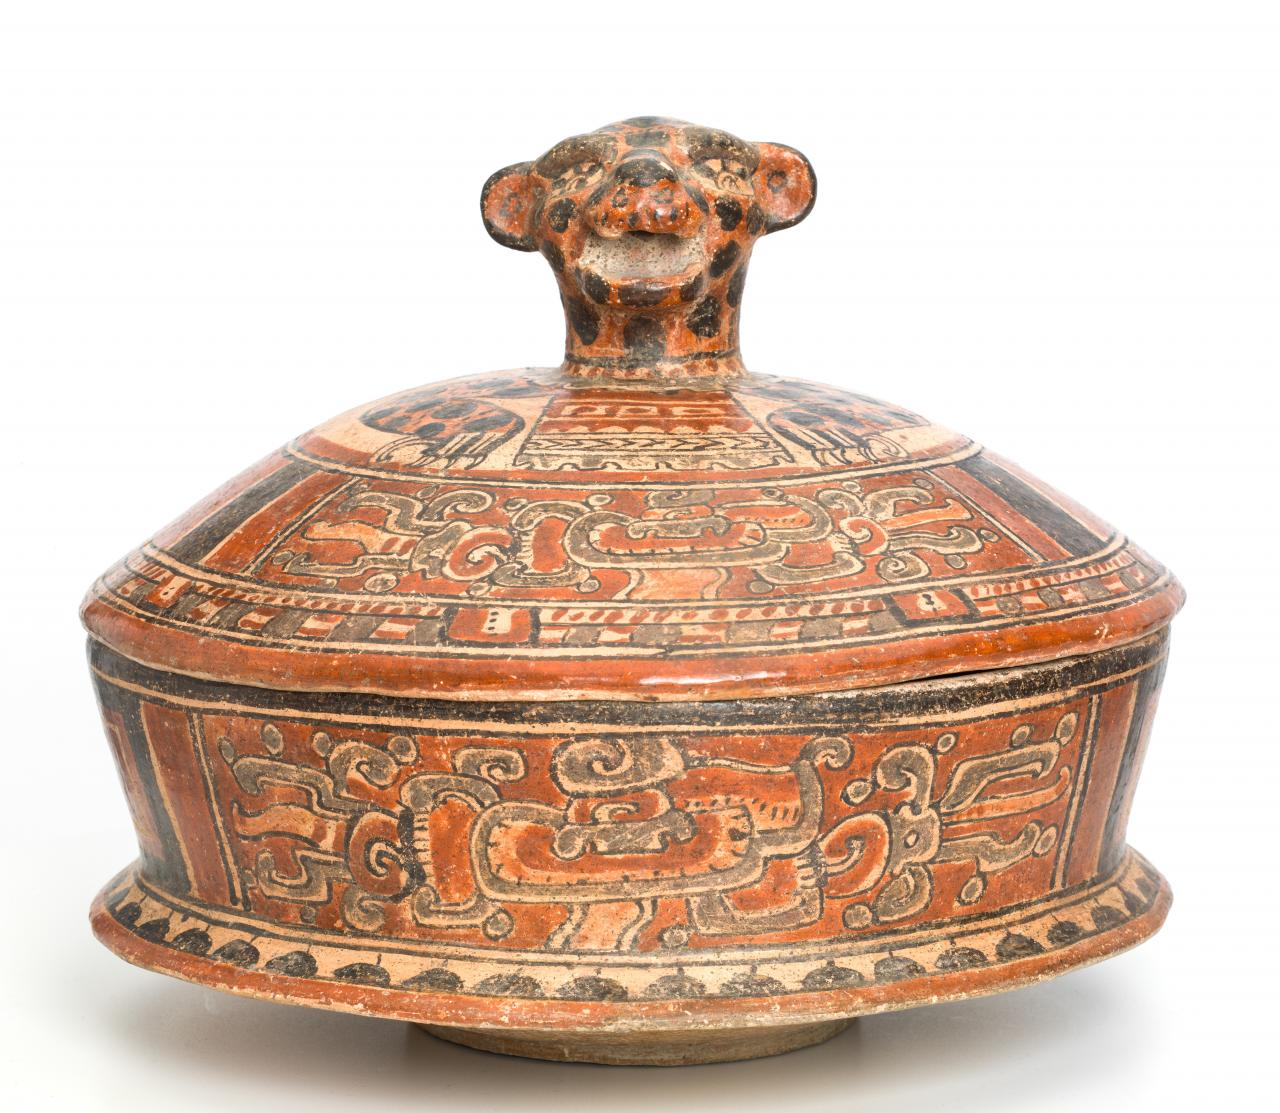 Jaguar-lidded bowl